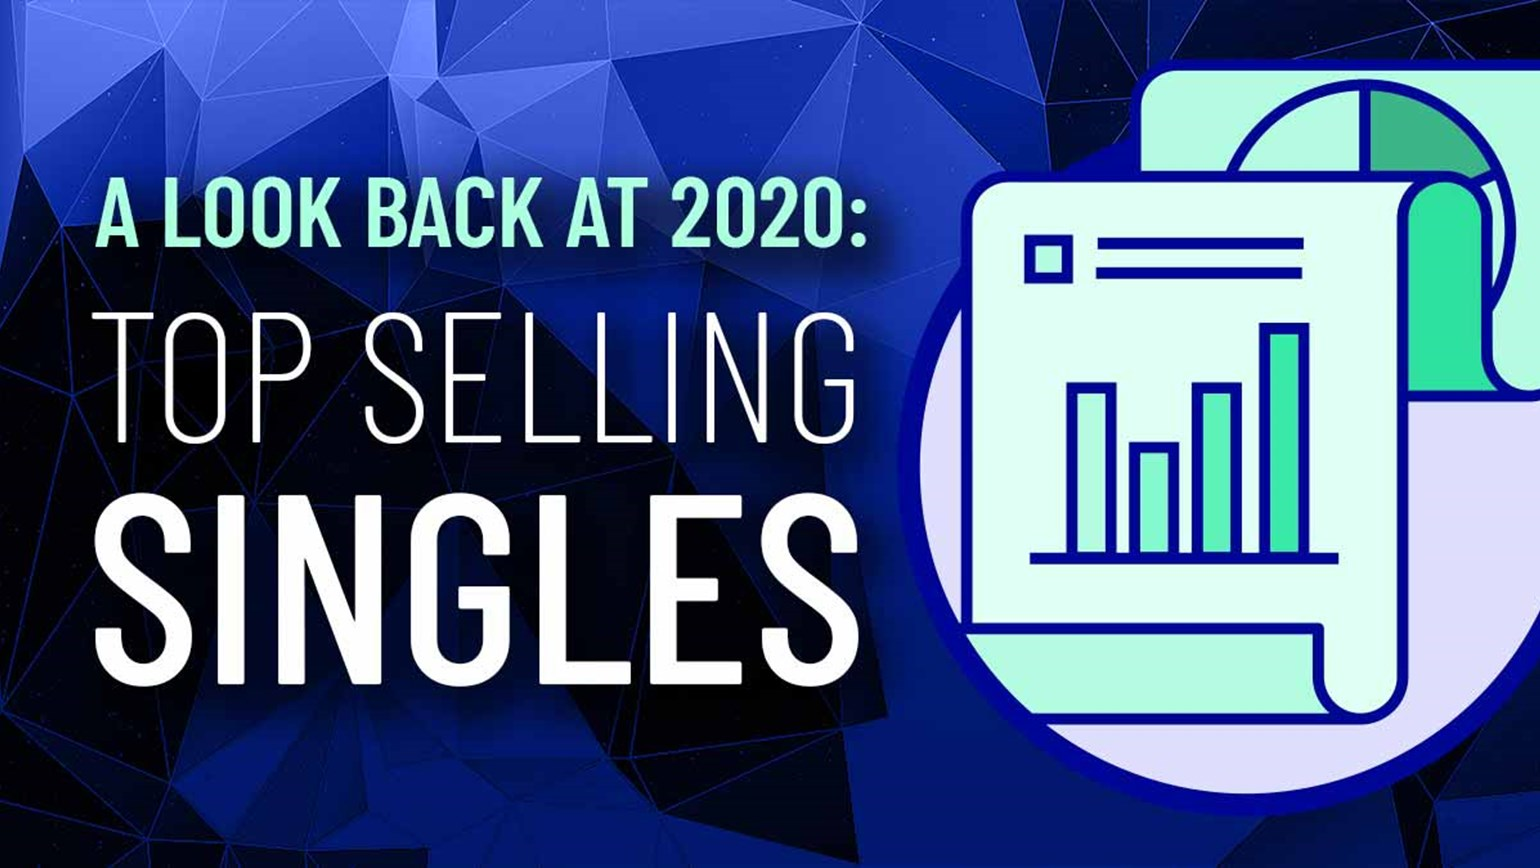 A Look Back at 2020: Top Selling Singles